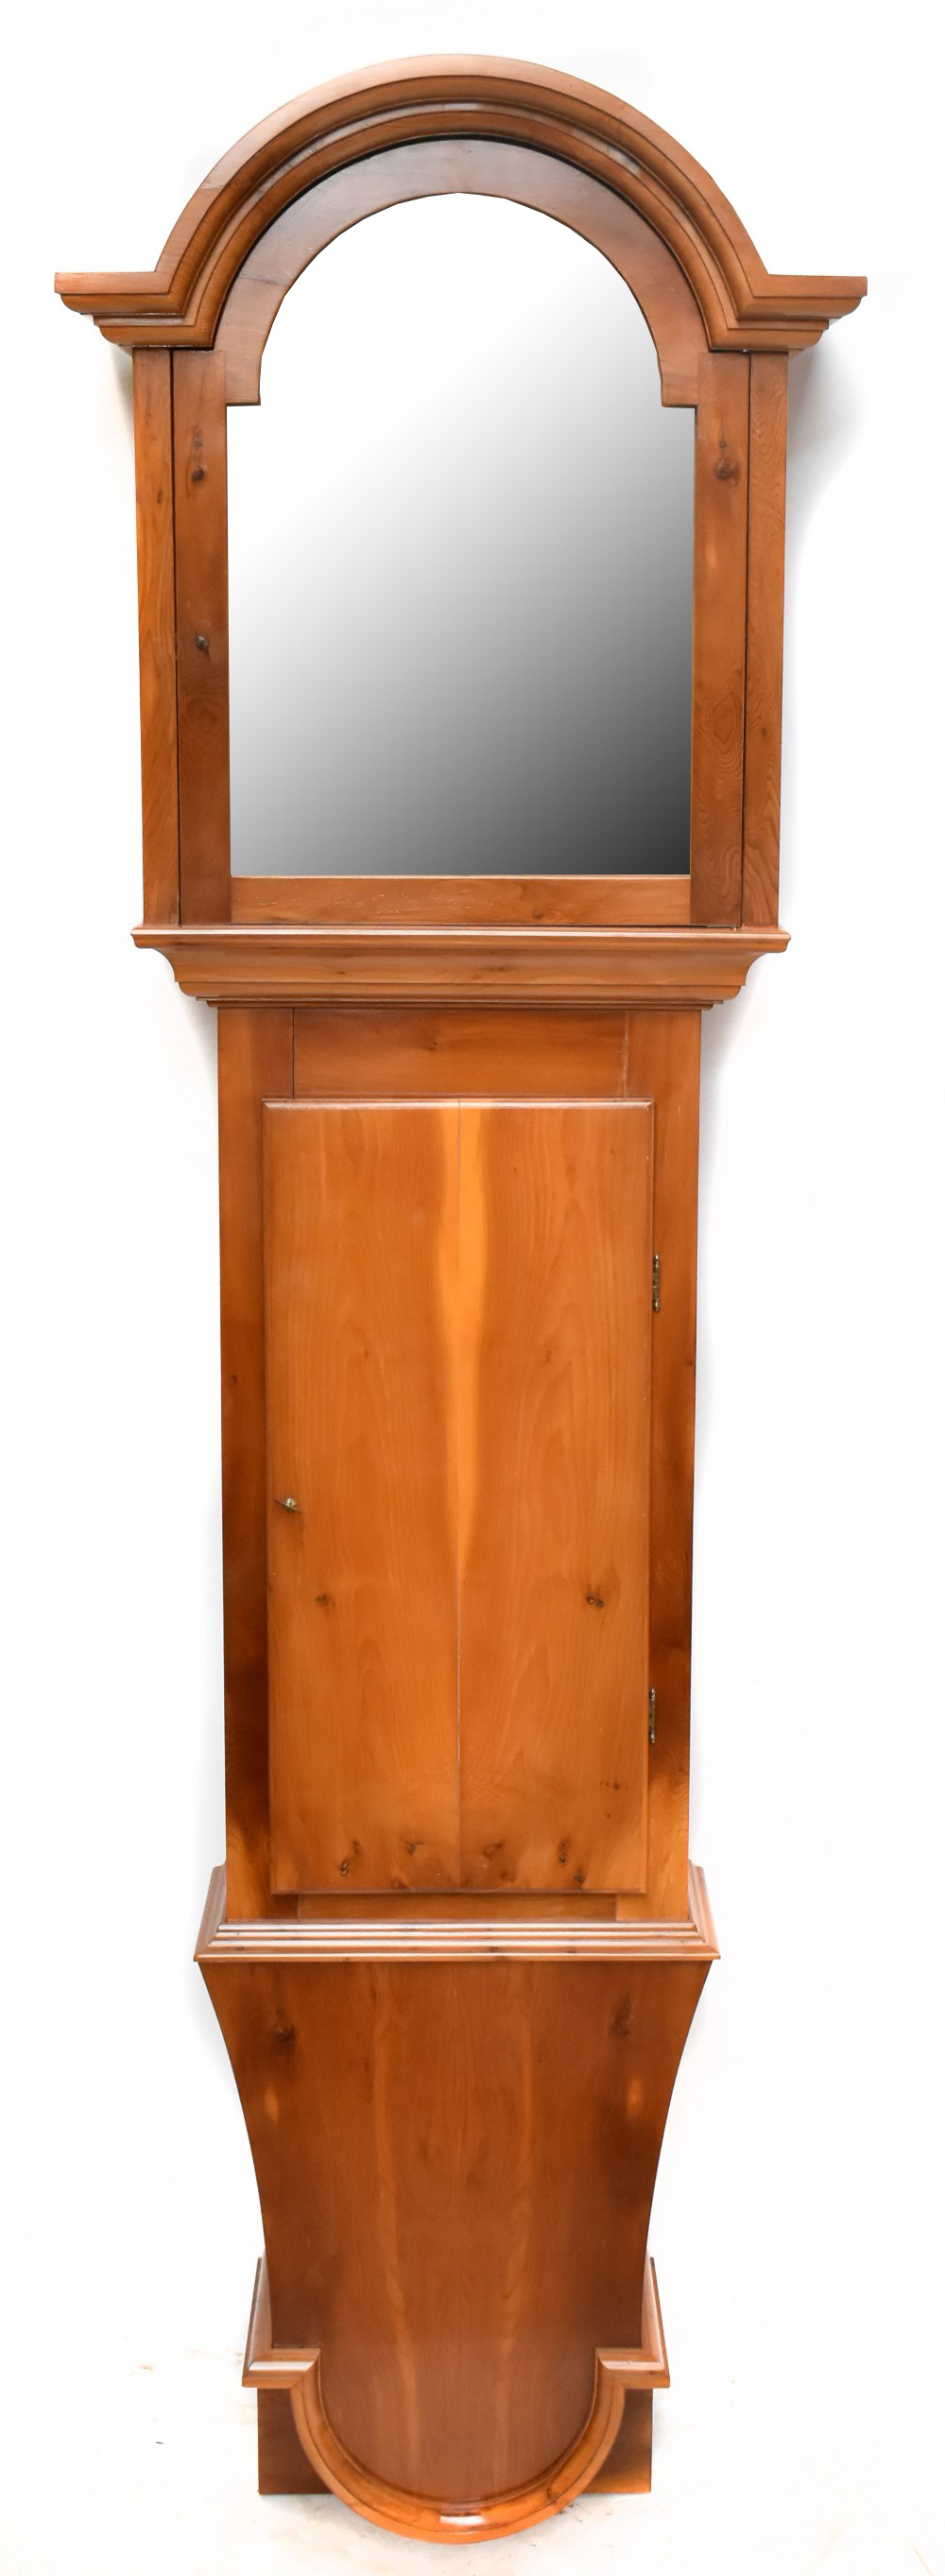 A modern yew wood wall hanging longcase clock case, with hood and trunk, height 200cm Provenance: